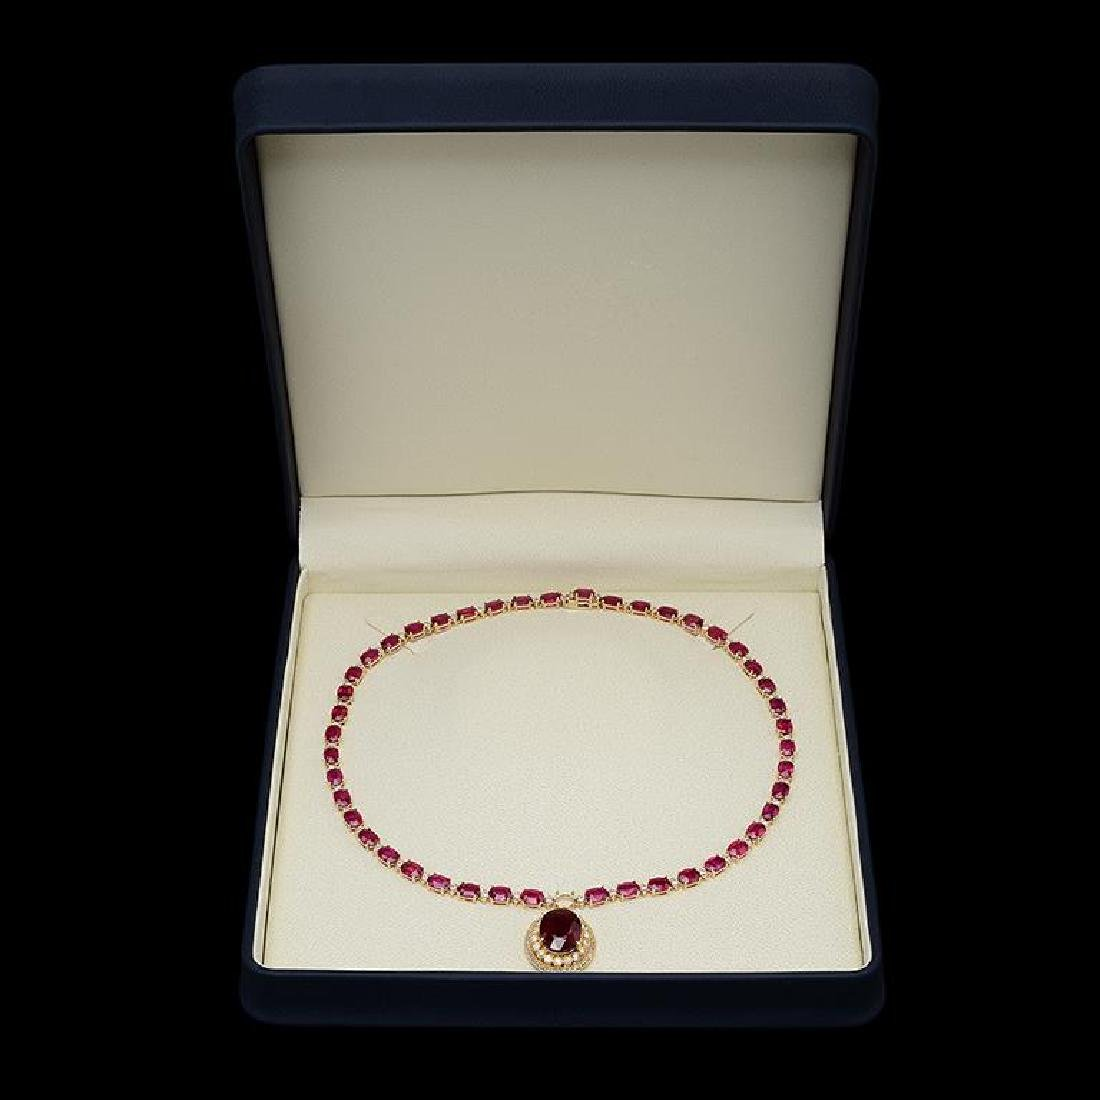 14K Gold 59.34ct Ruby 3.10ct Diamond Necklace - 3